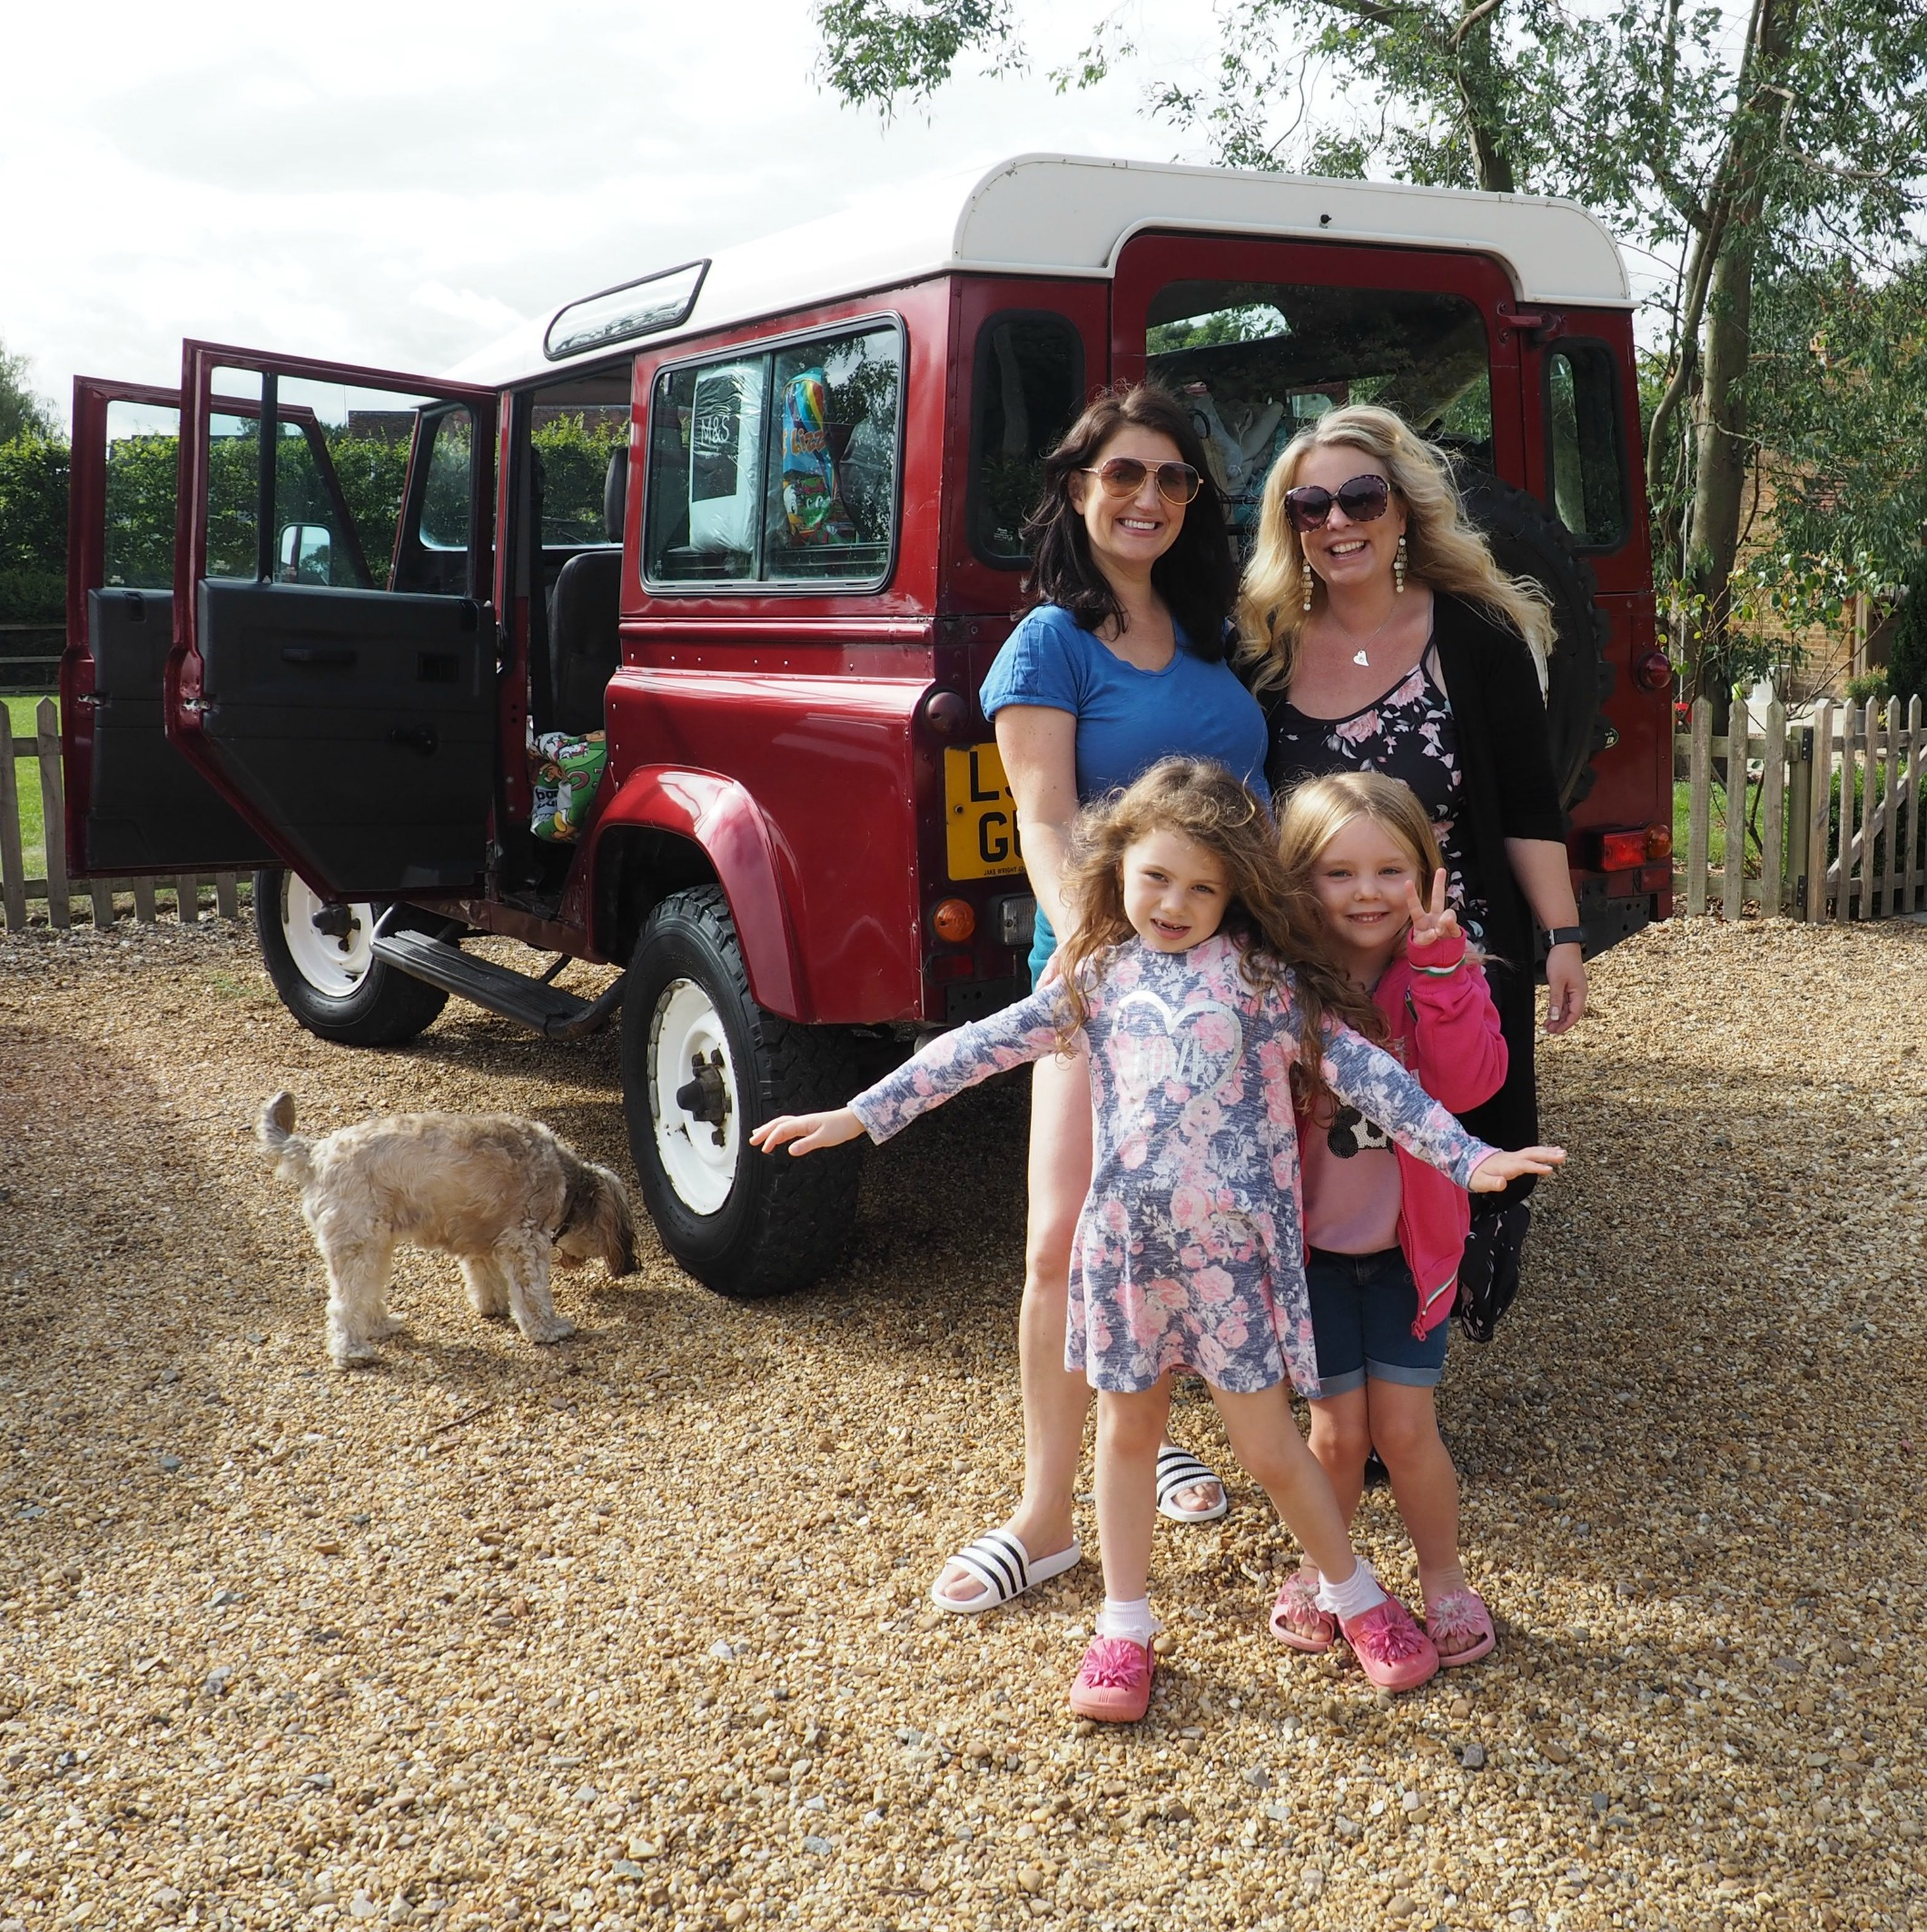 Child friendly campsites featuring family days out.